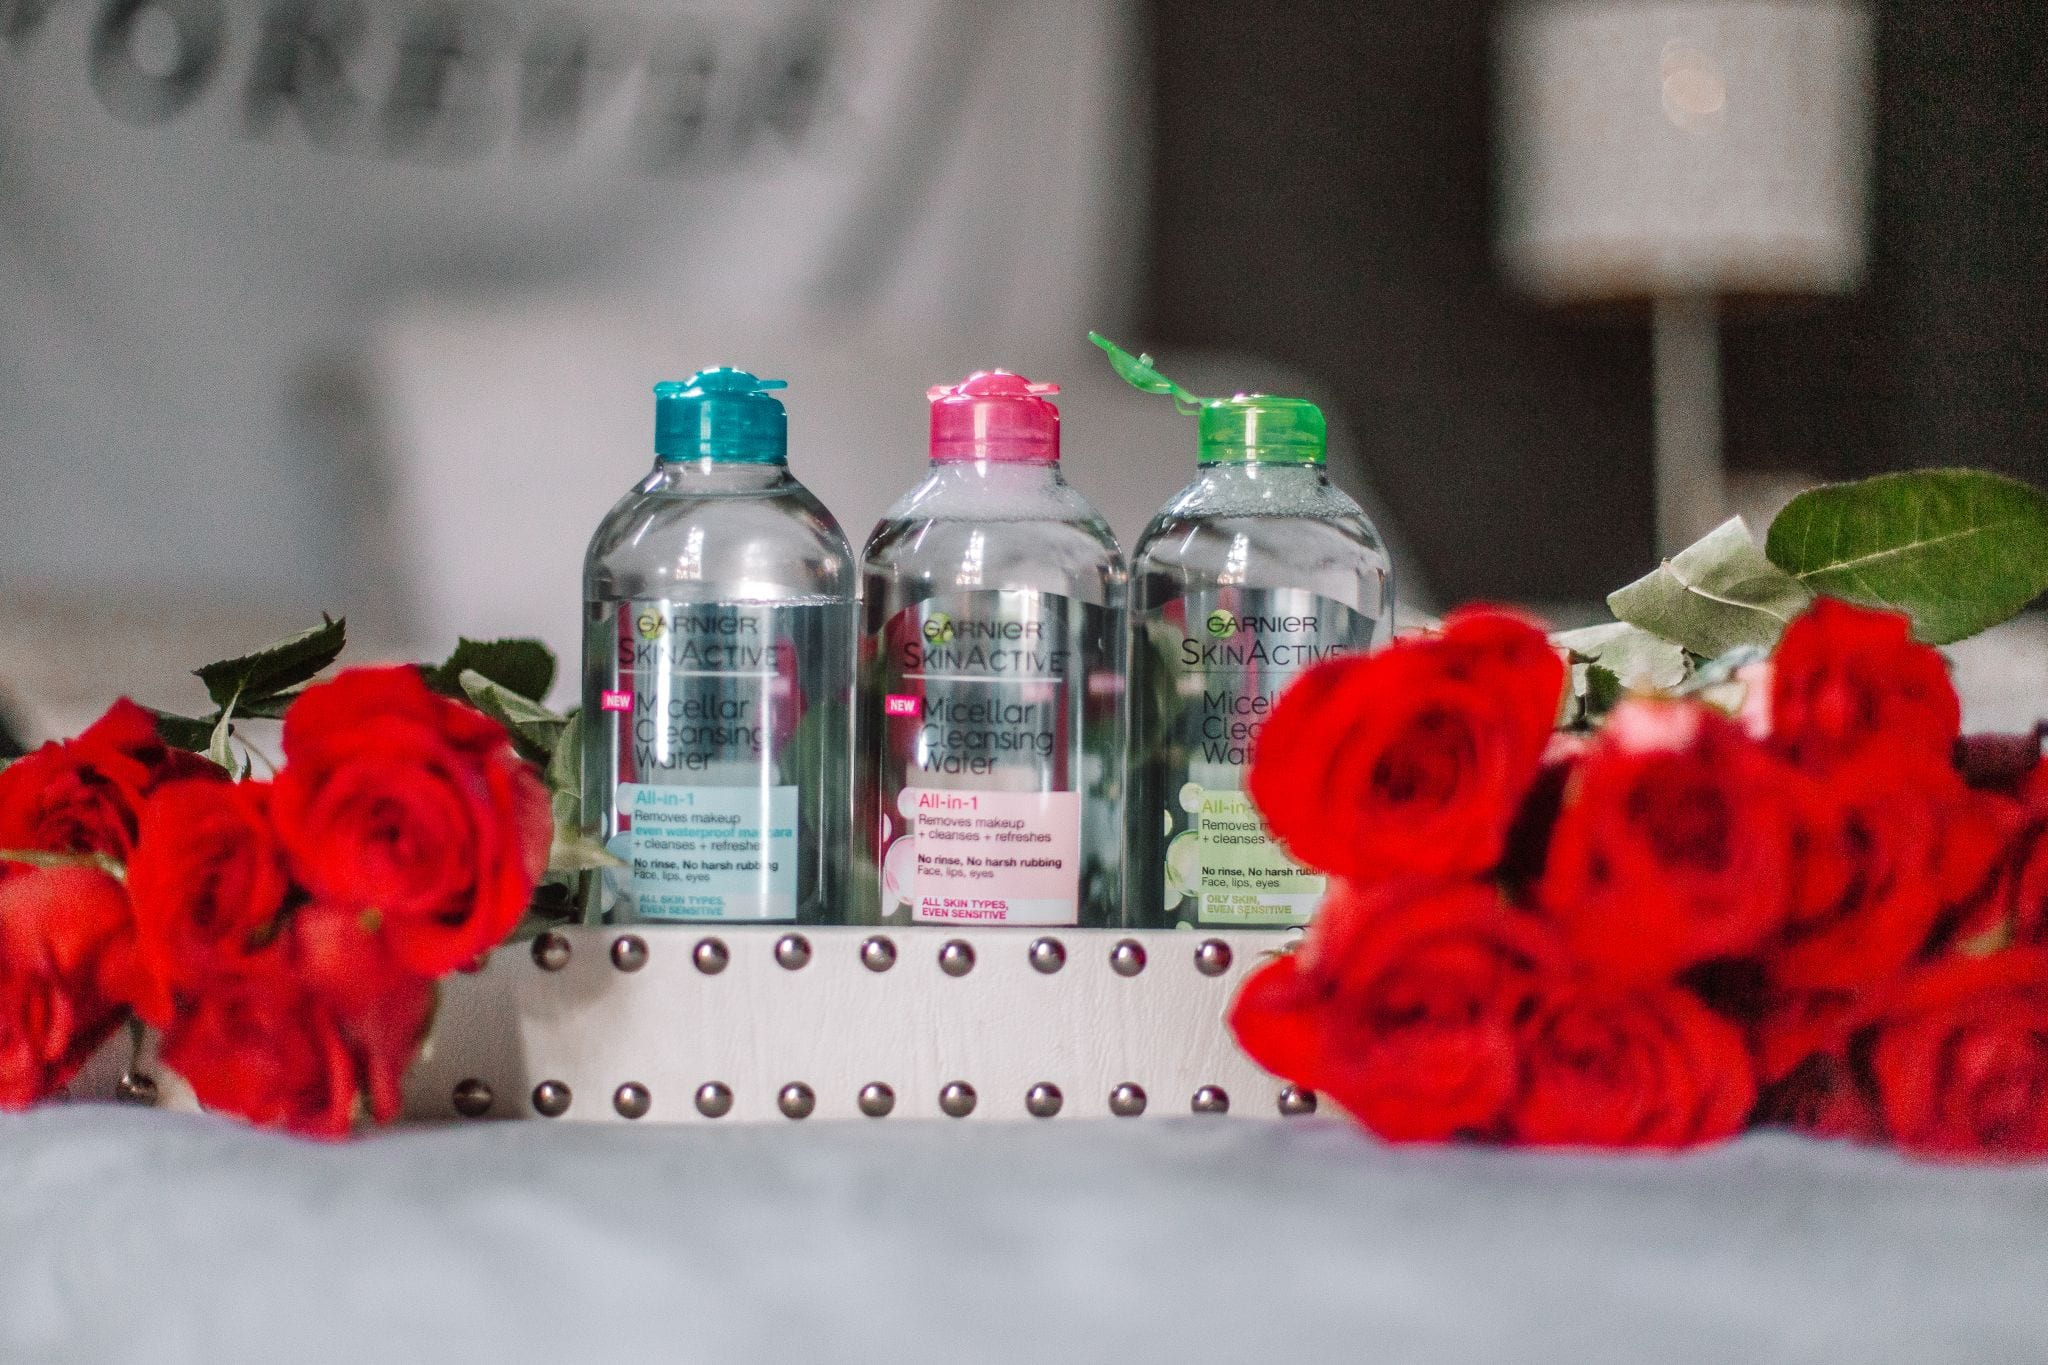 Garnier Micellar Water surrounded by roses